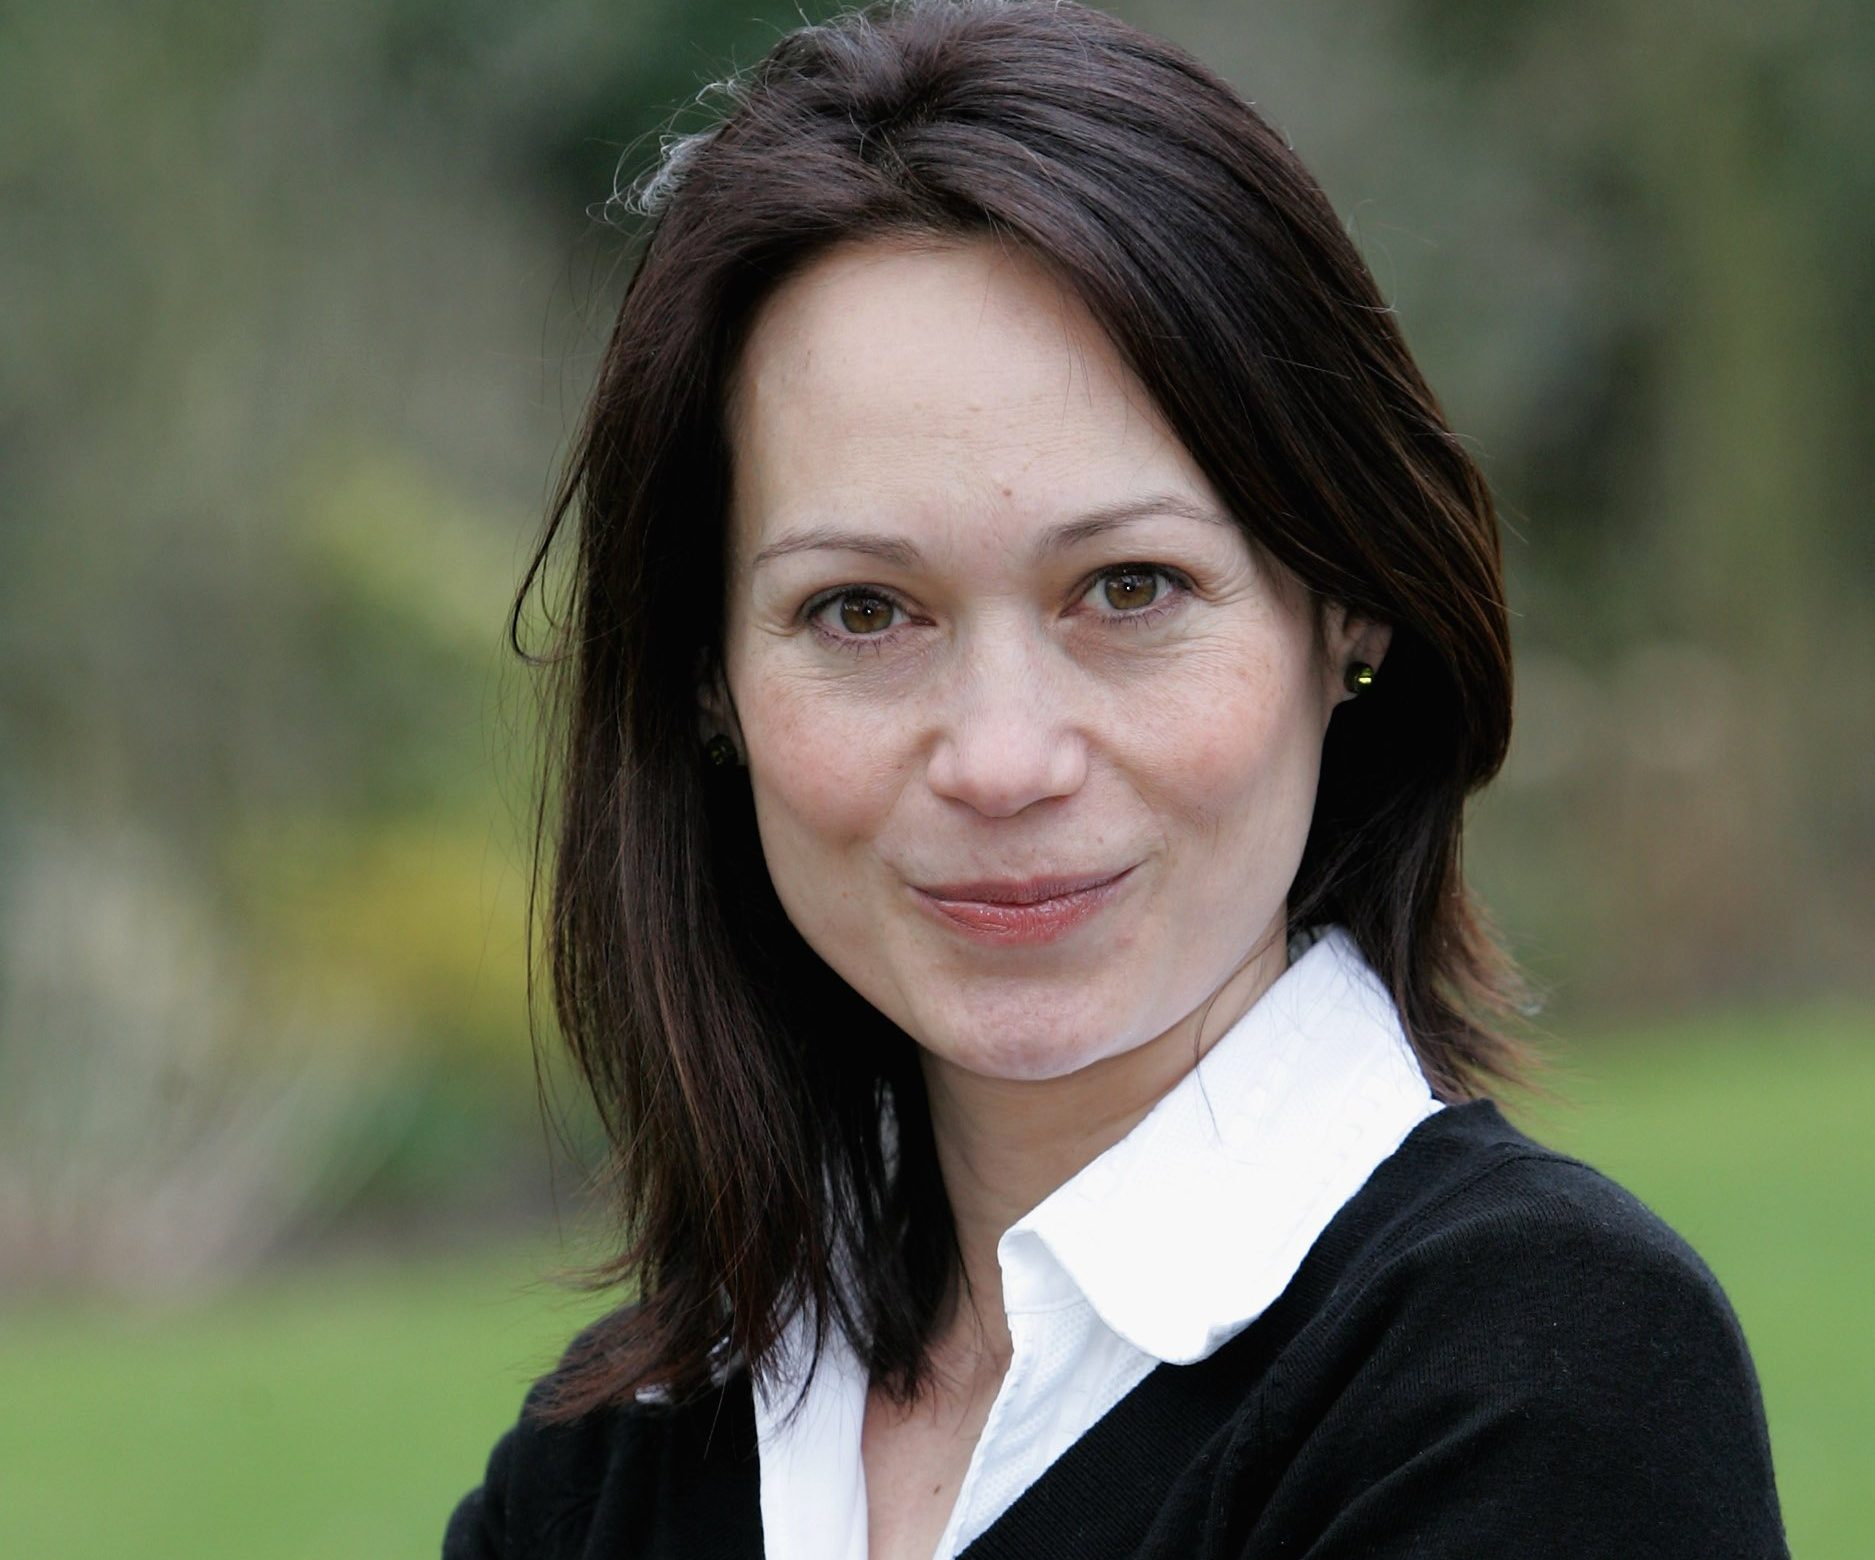 Former Emmerdale actress Leah Bracknell pens touching memoir about her battle with lung cancer